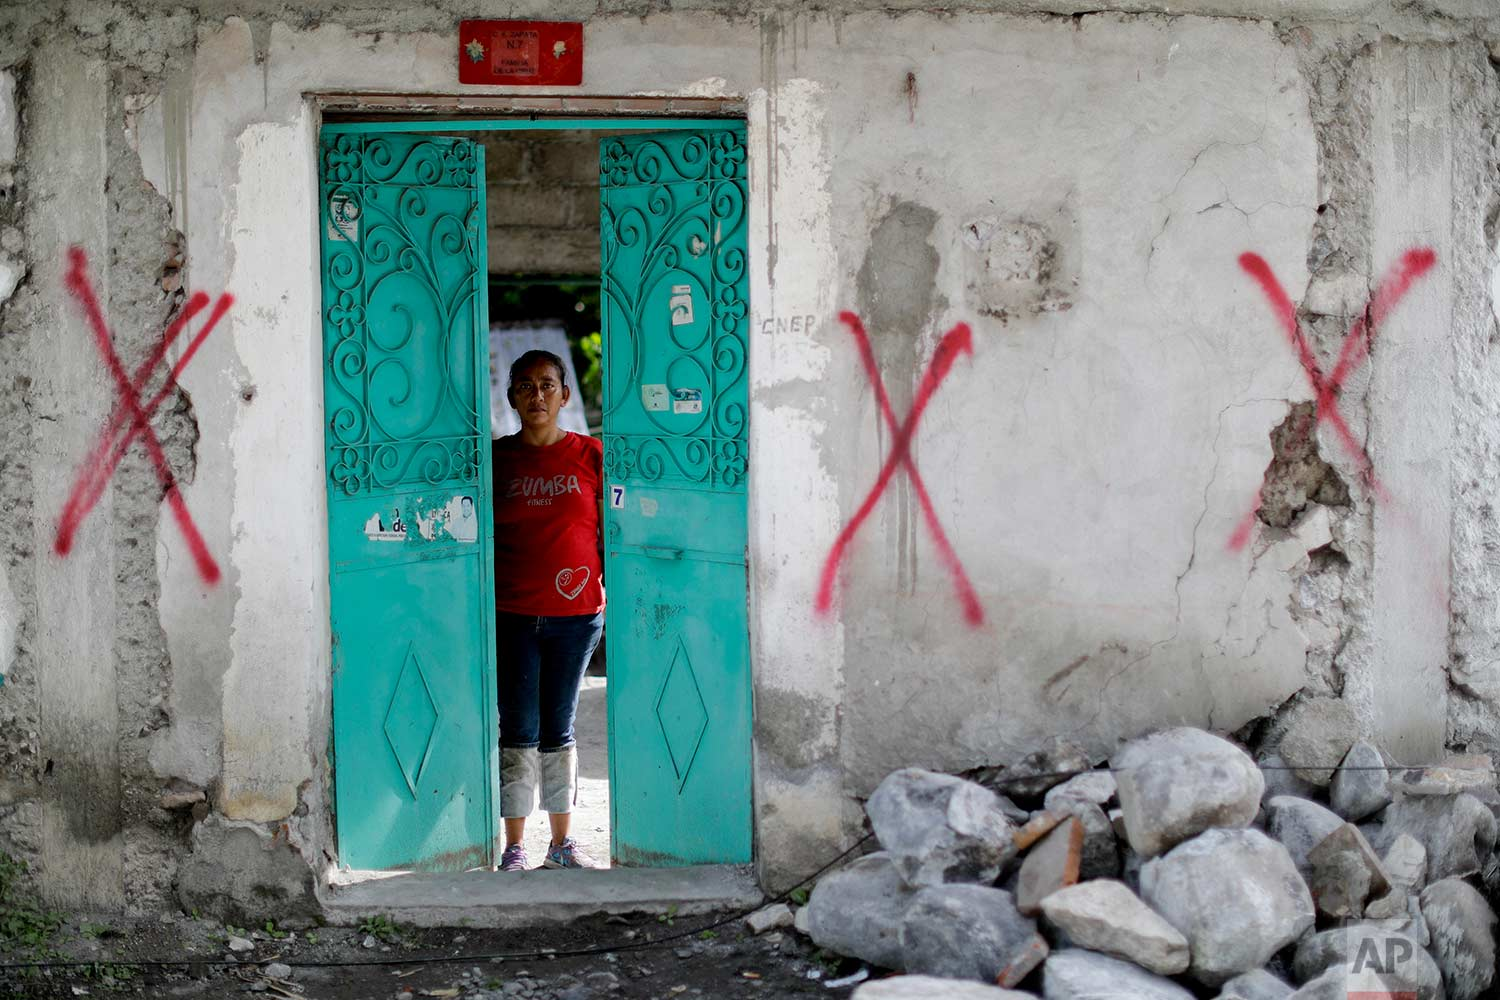 """Nadia Rosas stands inside her aunt's home covered with spray paint symbols designating it condemned, after it was destroyed by an earthquake, Sept. 23, 2017,in Atzala, Mexico. Rosas moved in with her 68-year-old aunt after the earthquake destroyed everything. """"In these catastrophes we're united as brothers, as people, as women,"""" Rosas said. (AP Photo/Natacha Pisarenko)"""